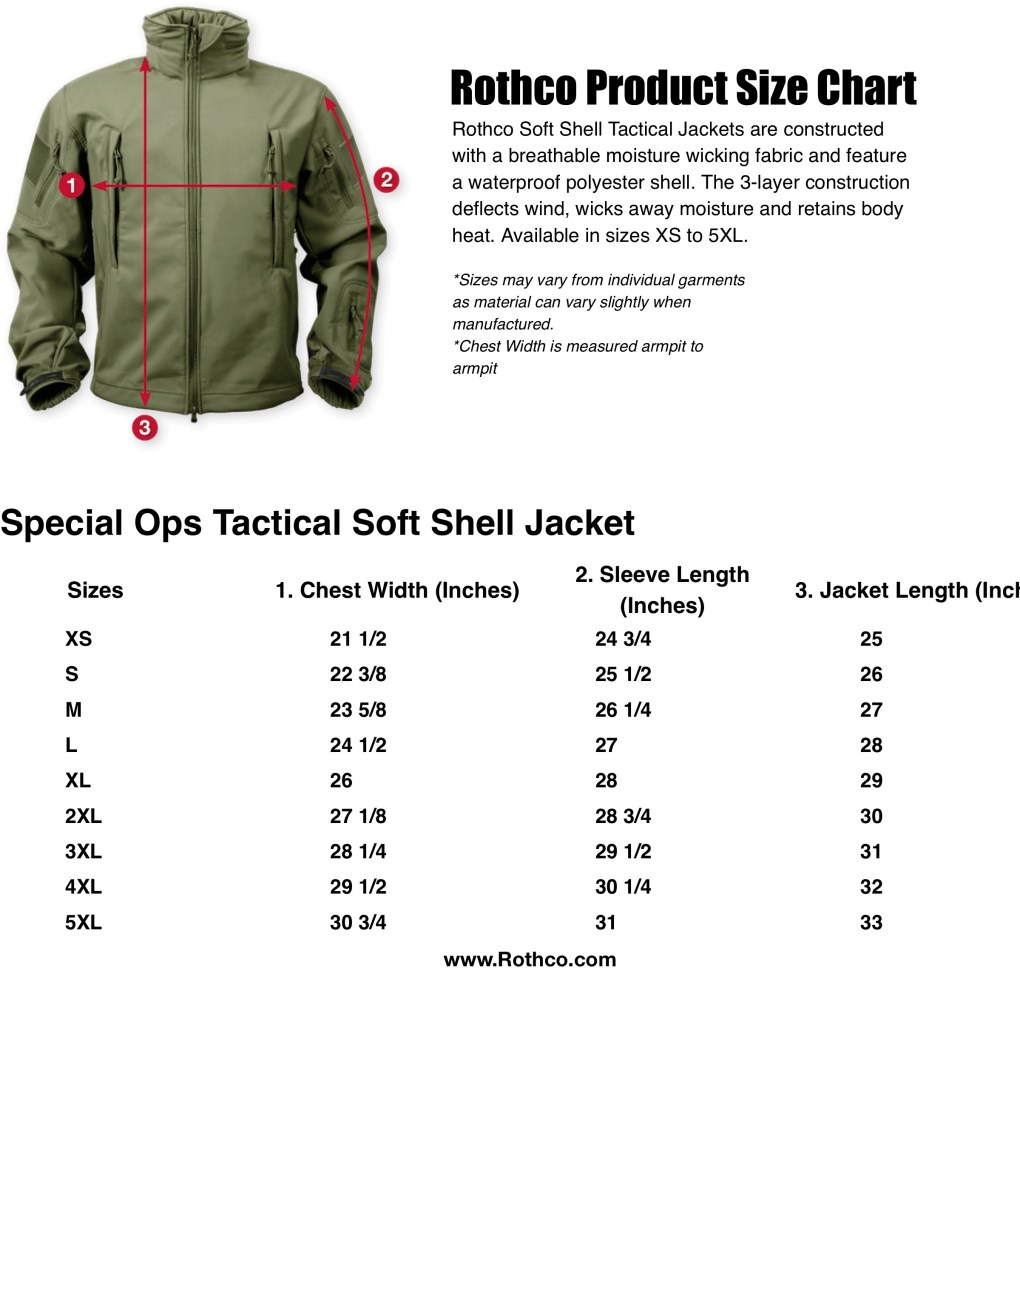 Rothco Spec Ops Tactical Soft Shell Jacket Size Chart